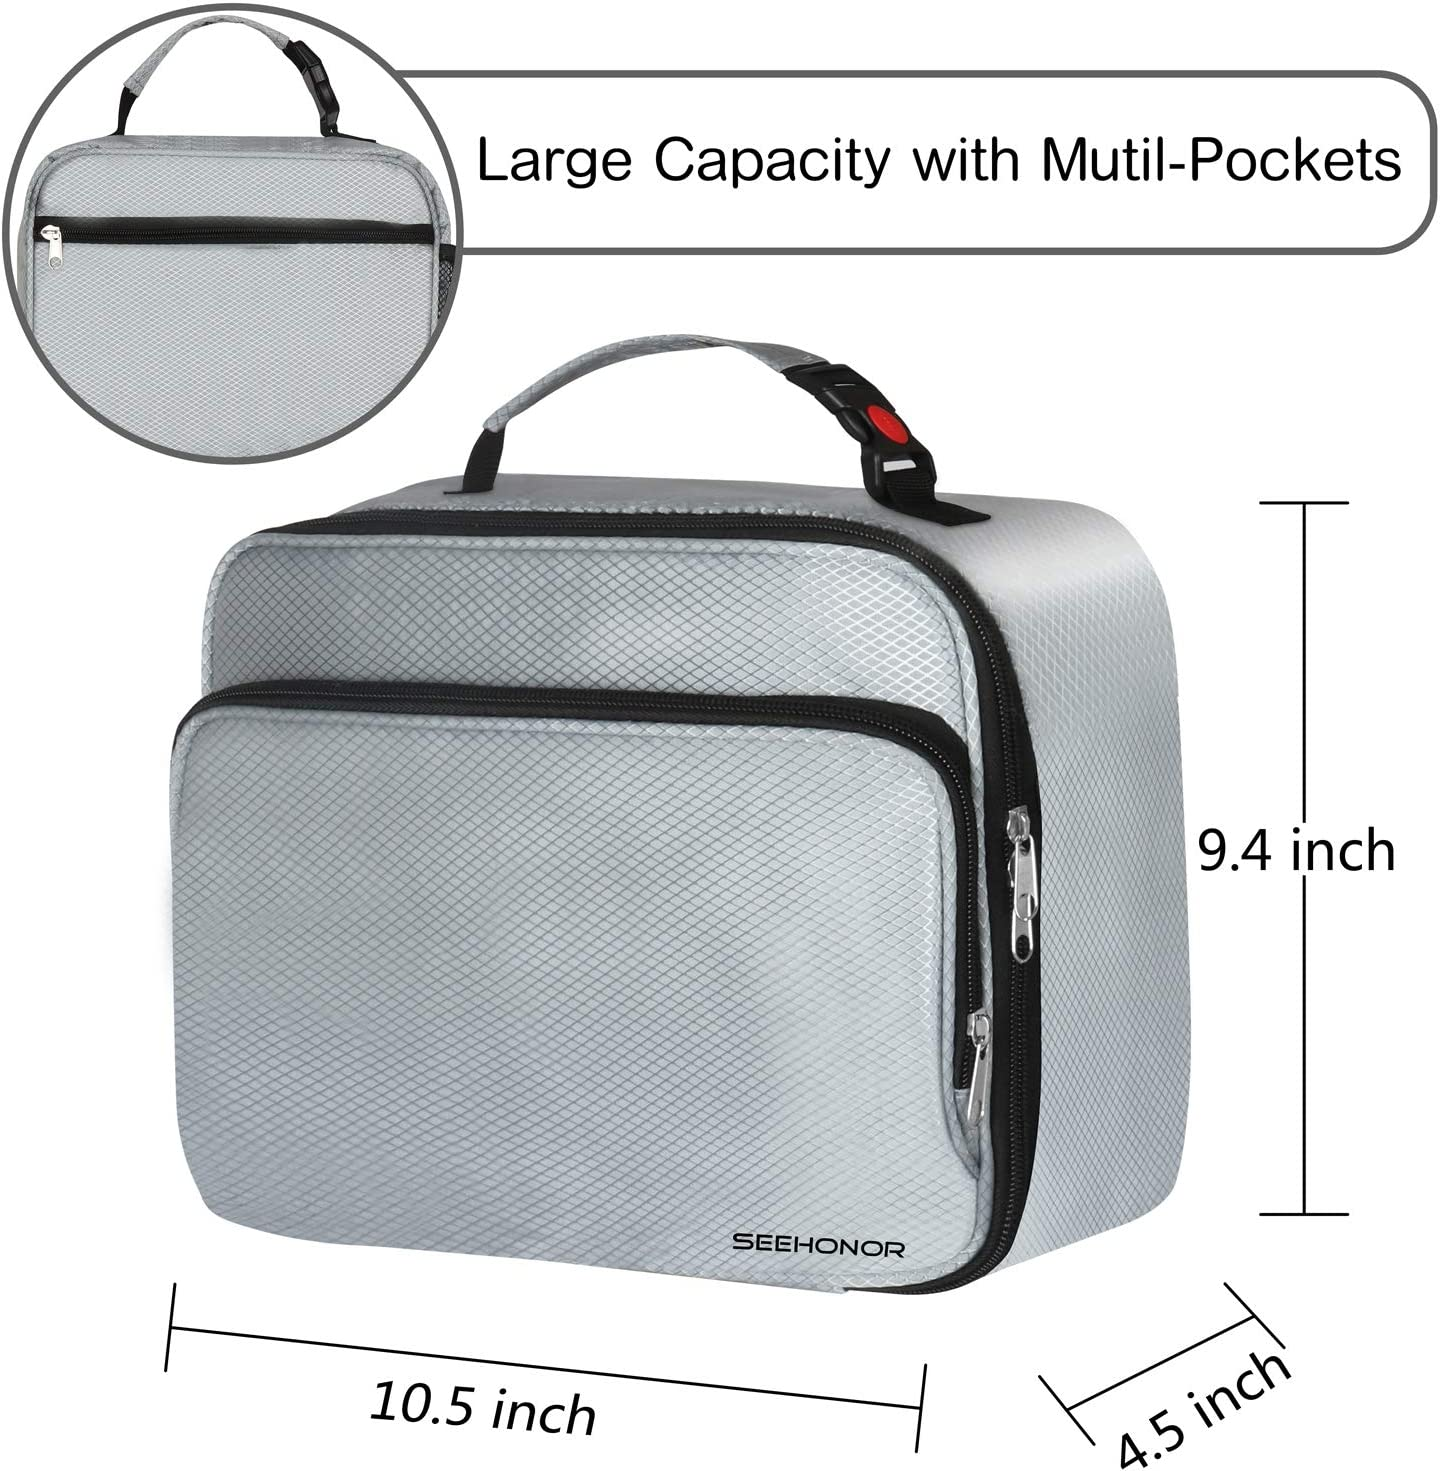 SEEHONOR Insulated Lunch Box Thermal Durable Reusable Lunch Bag Lunch Tote Bag Bento Bag Soft Bag for Adults Women Men kids Office Work School Picnic Hiking Beach,Silver